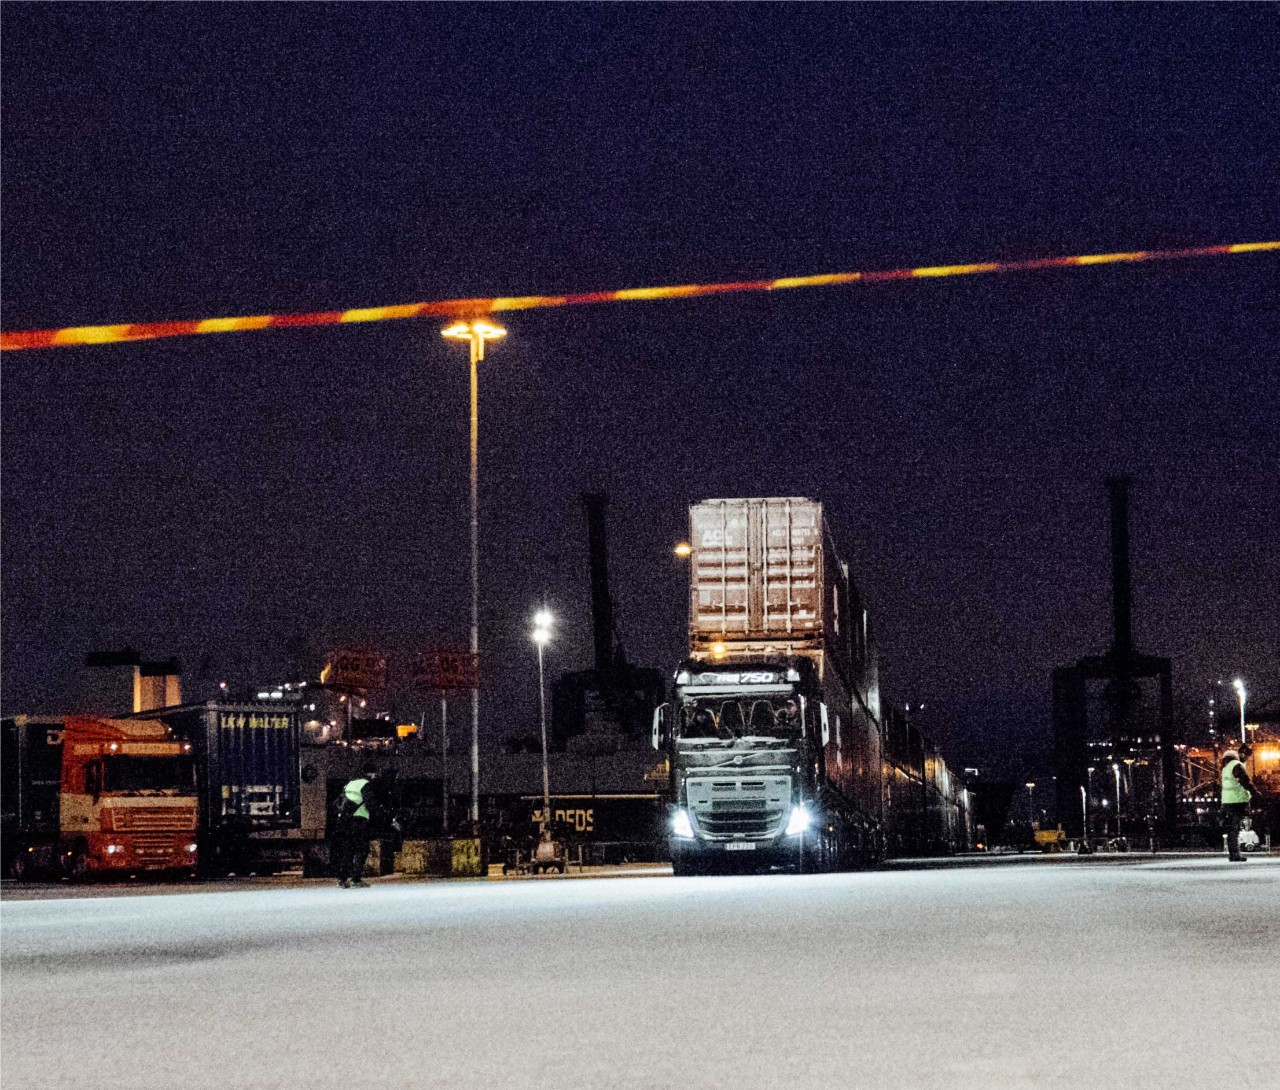 The container train is approaching the finishing line a 100 metres from the starting point.